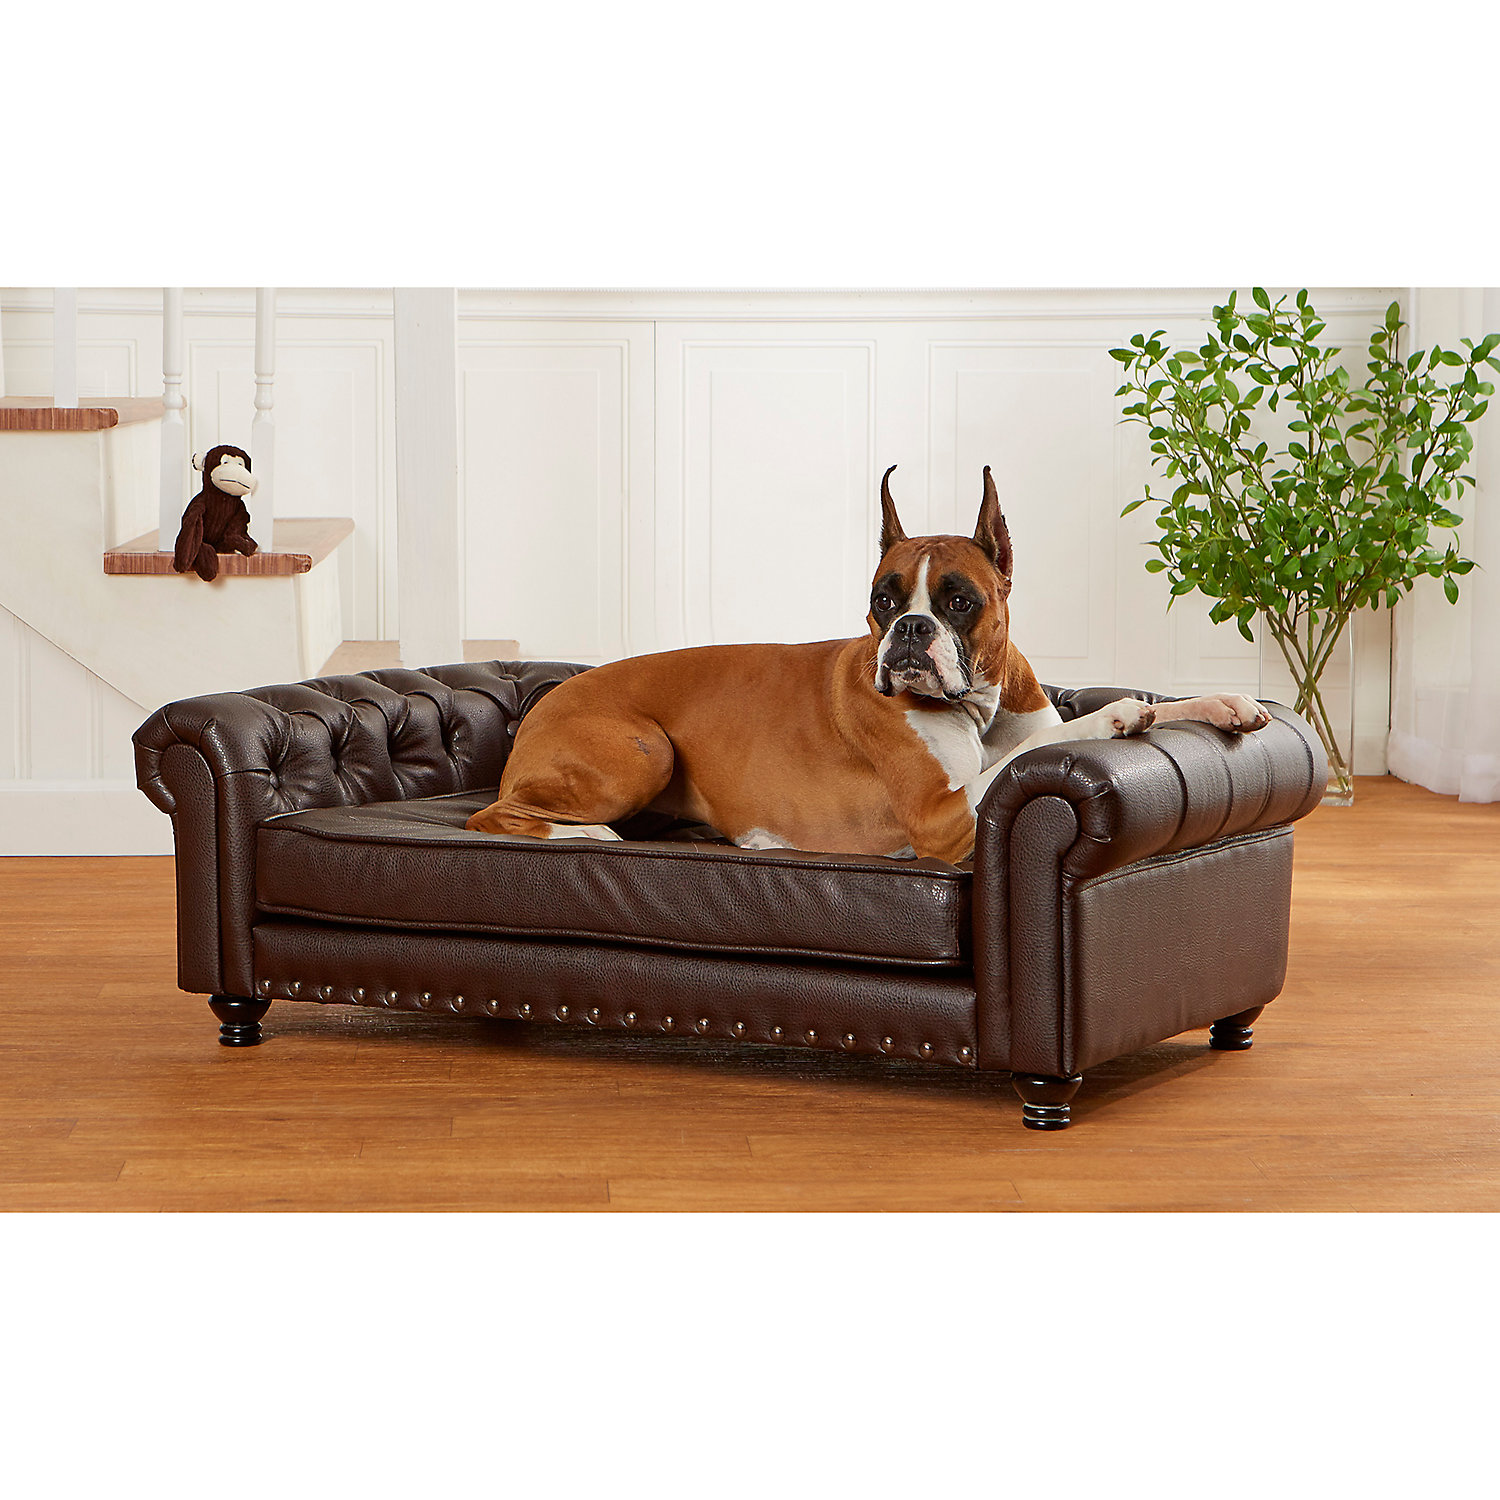 Enchanted Home Pet Wentworth Pebble Brown Sofa for Dog